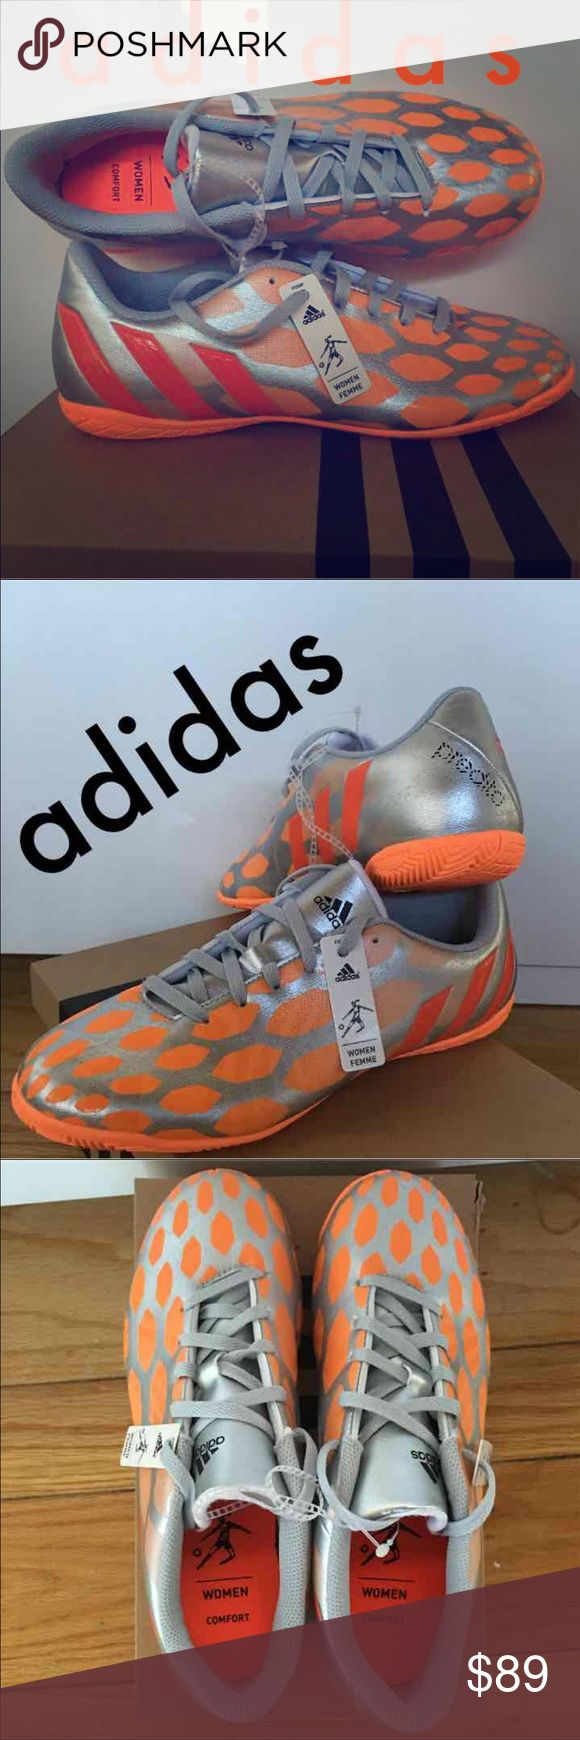 NWT Adidas Predito Soccer Football Boots Brand new with tags and incorrect box.   Metallic Silver & Orange   Women's Size 8  Retail $89 Brisette #11 Adidas Shoes Athletic Shoes